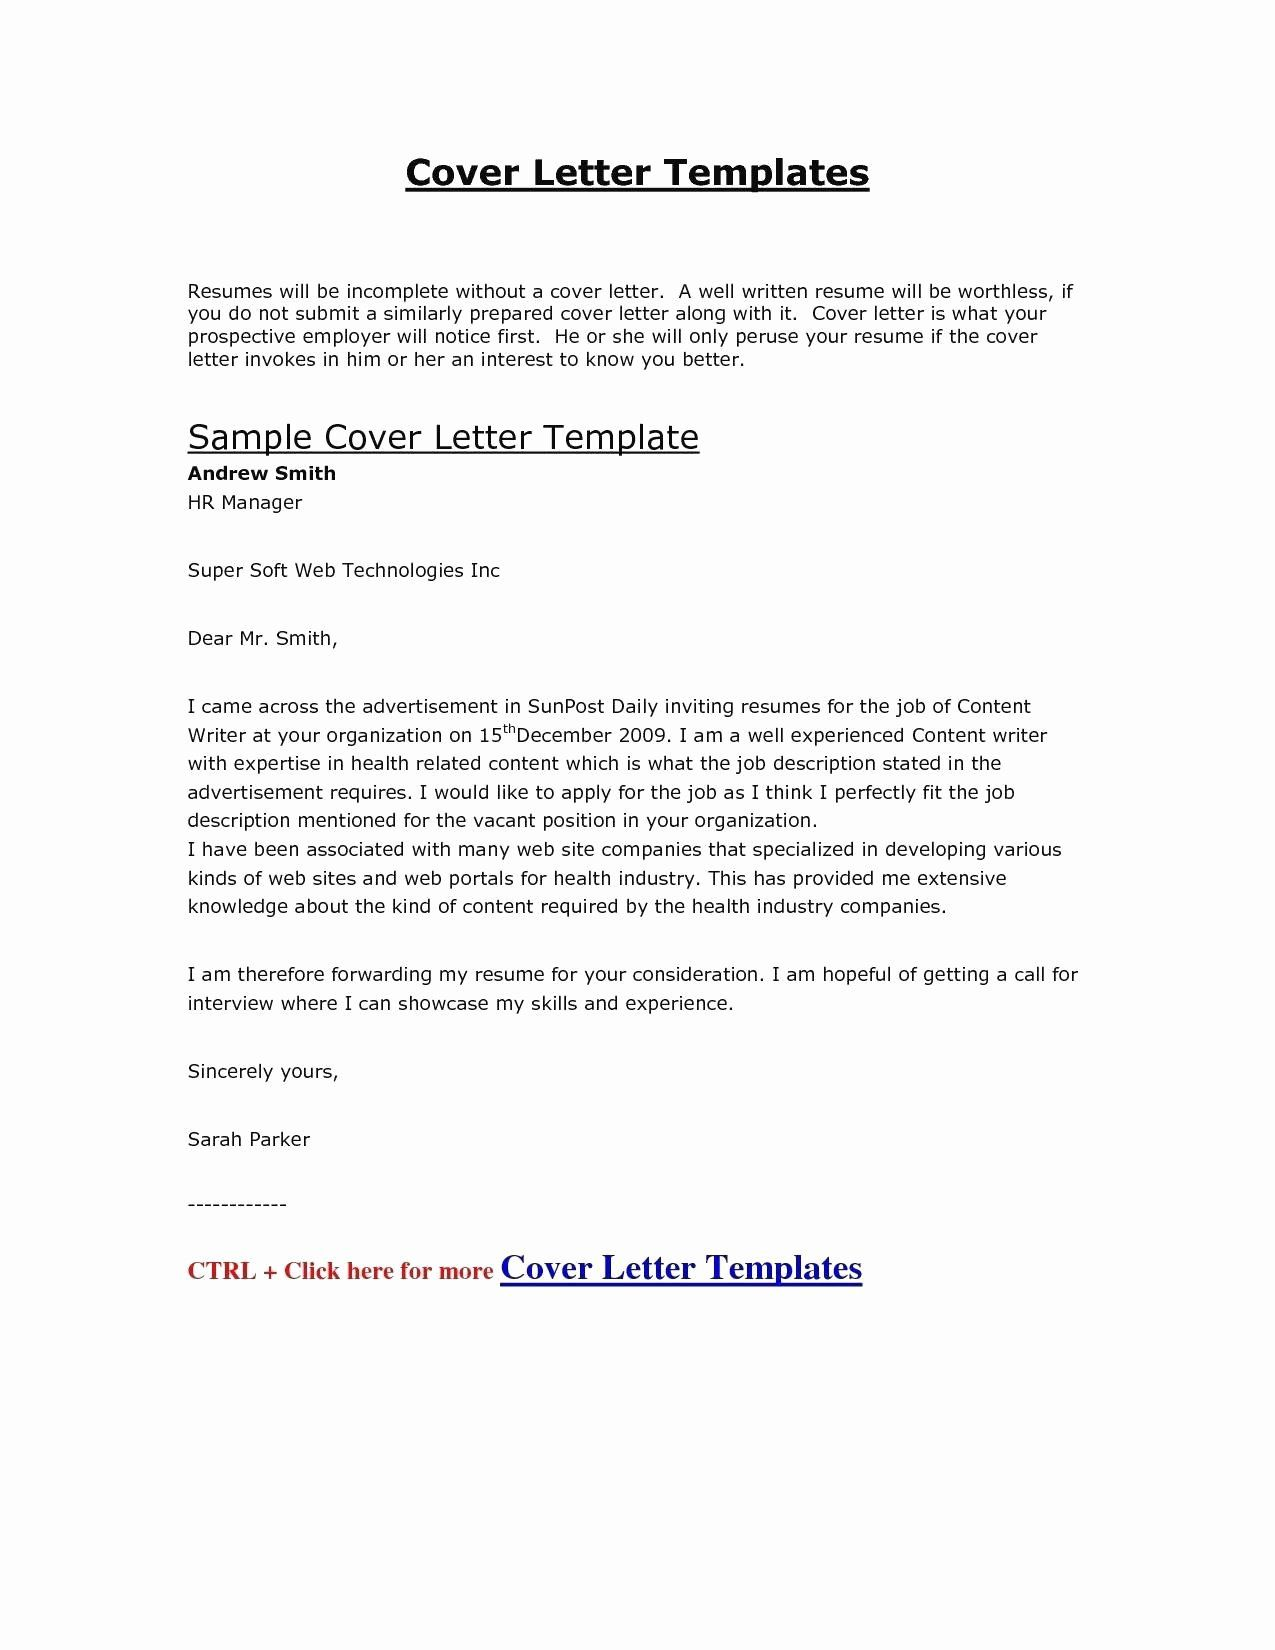 best resume writing service reddit can anyone suggest professional follow up phone call Resume Best Resume Writing Service Reddit